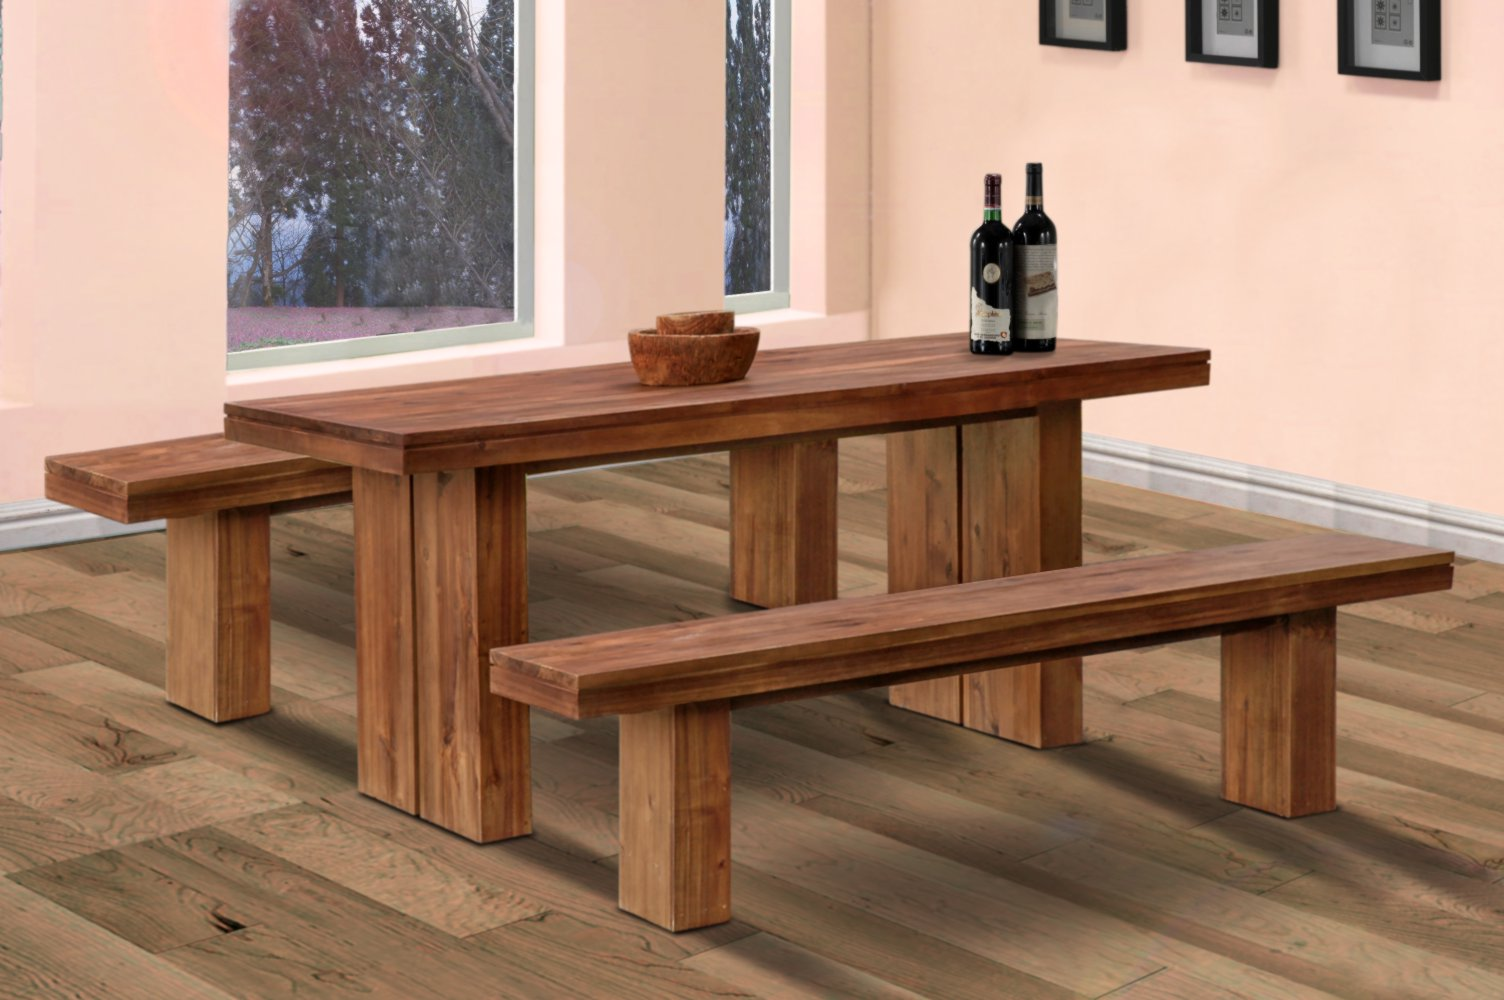 Danielle dining table and bench java valentti Dining table and bench set